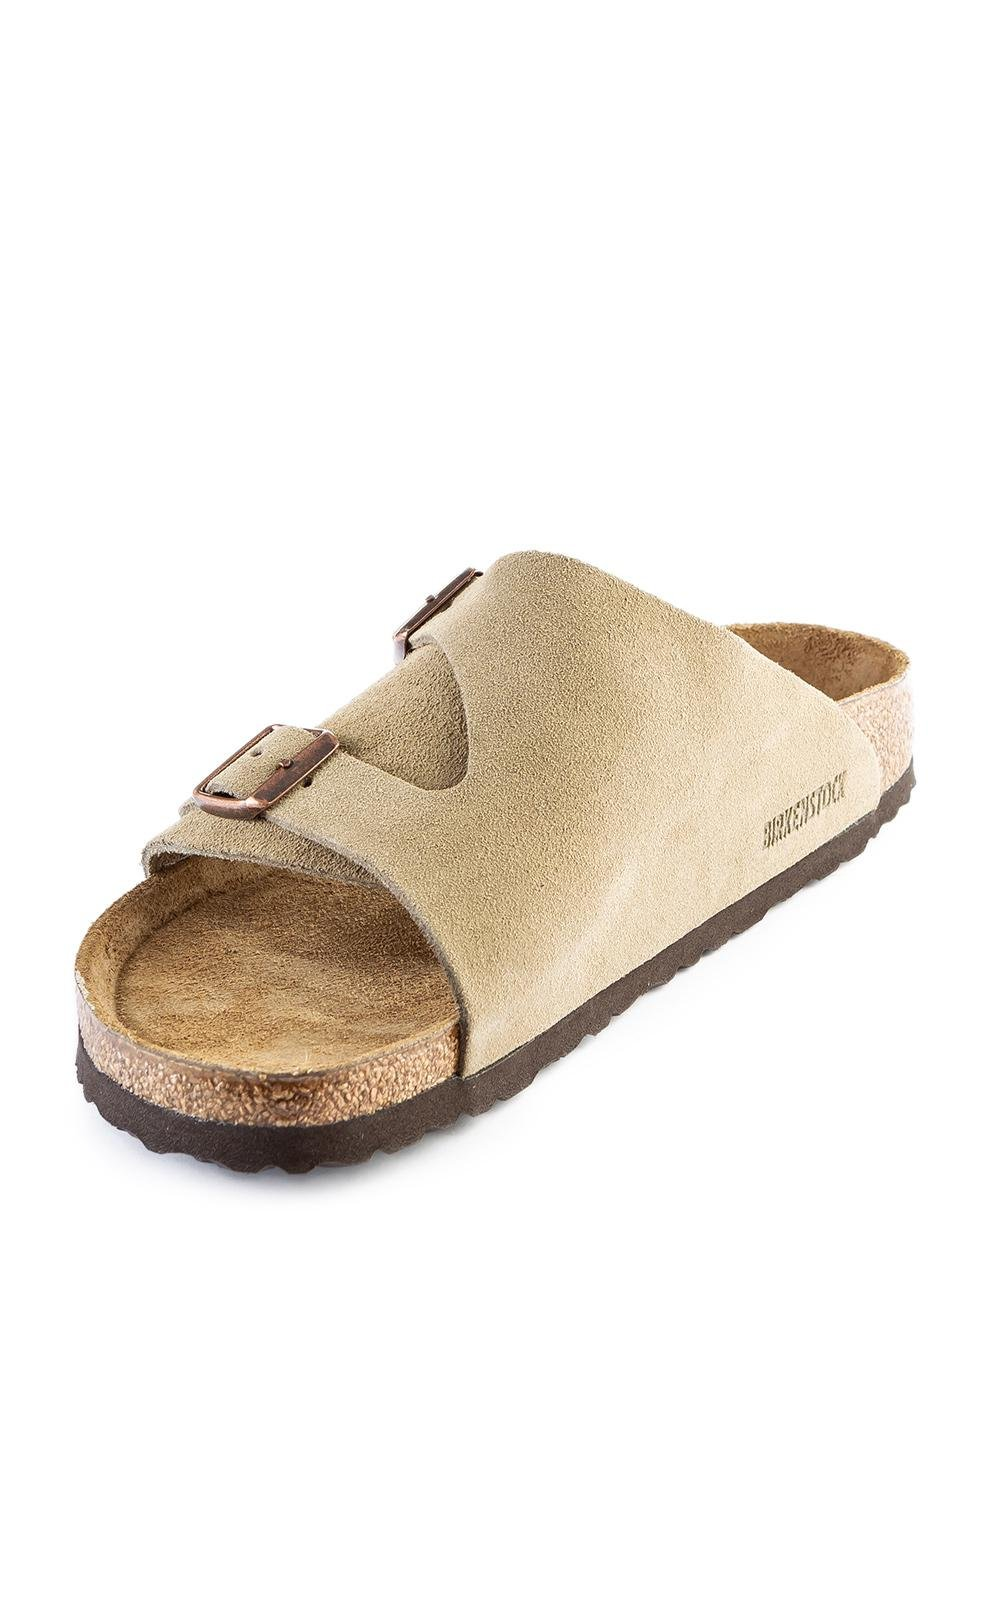 1a1dc7793a7 Birkenstock - Multicolor Zürich Soft Footbed Velour Taupe - Lyst. View  fullscreen